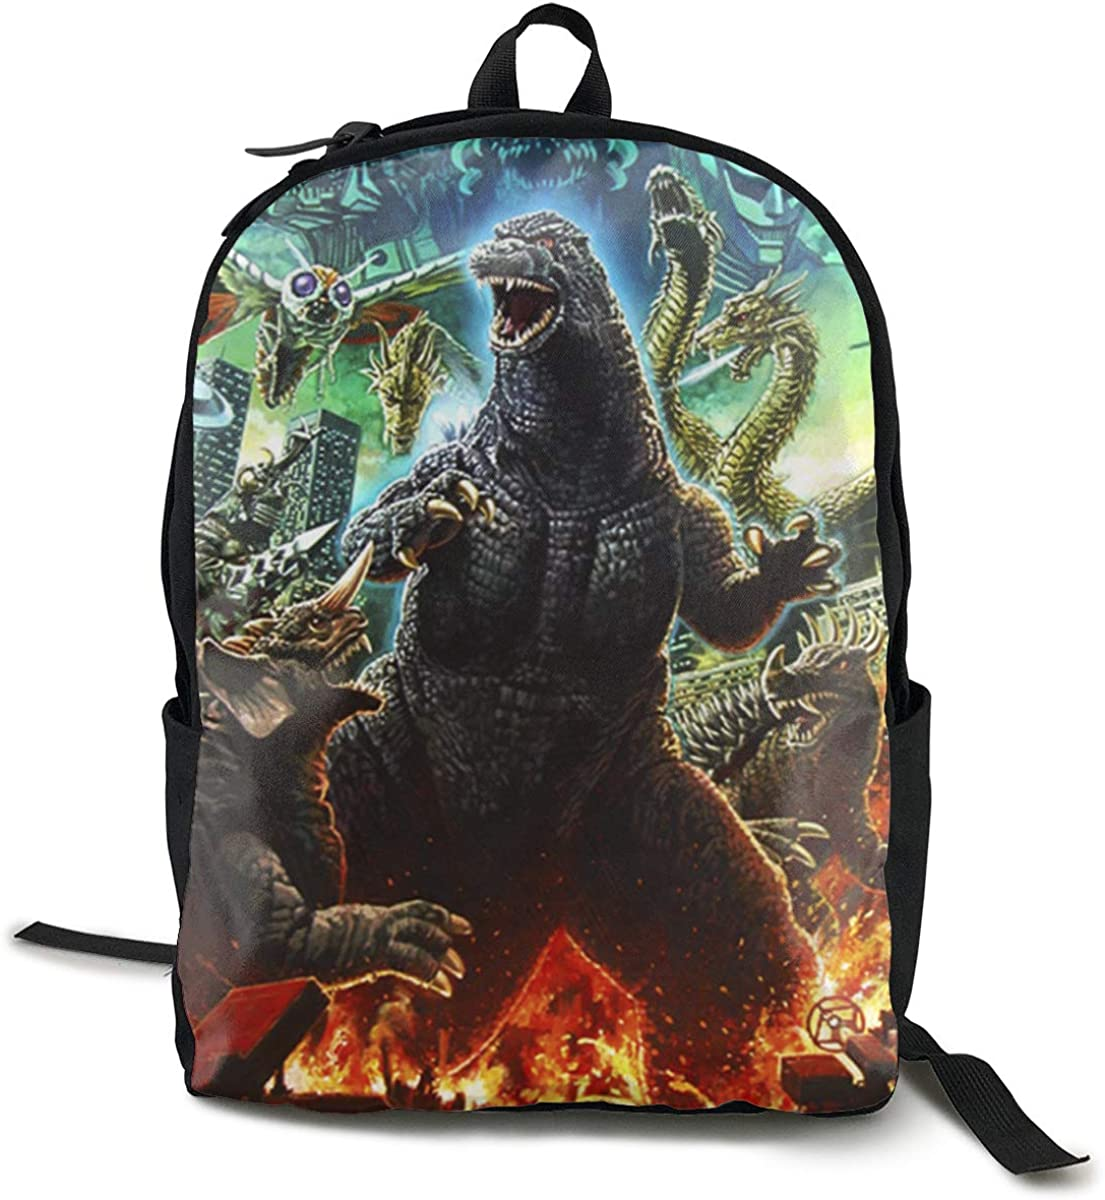 THORP.JENELLE Special God-Zilla Outdoor Youth Unisex Backpack